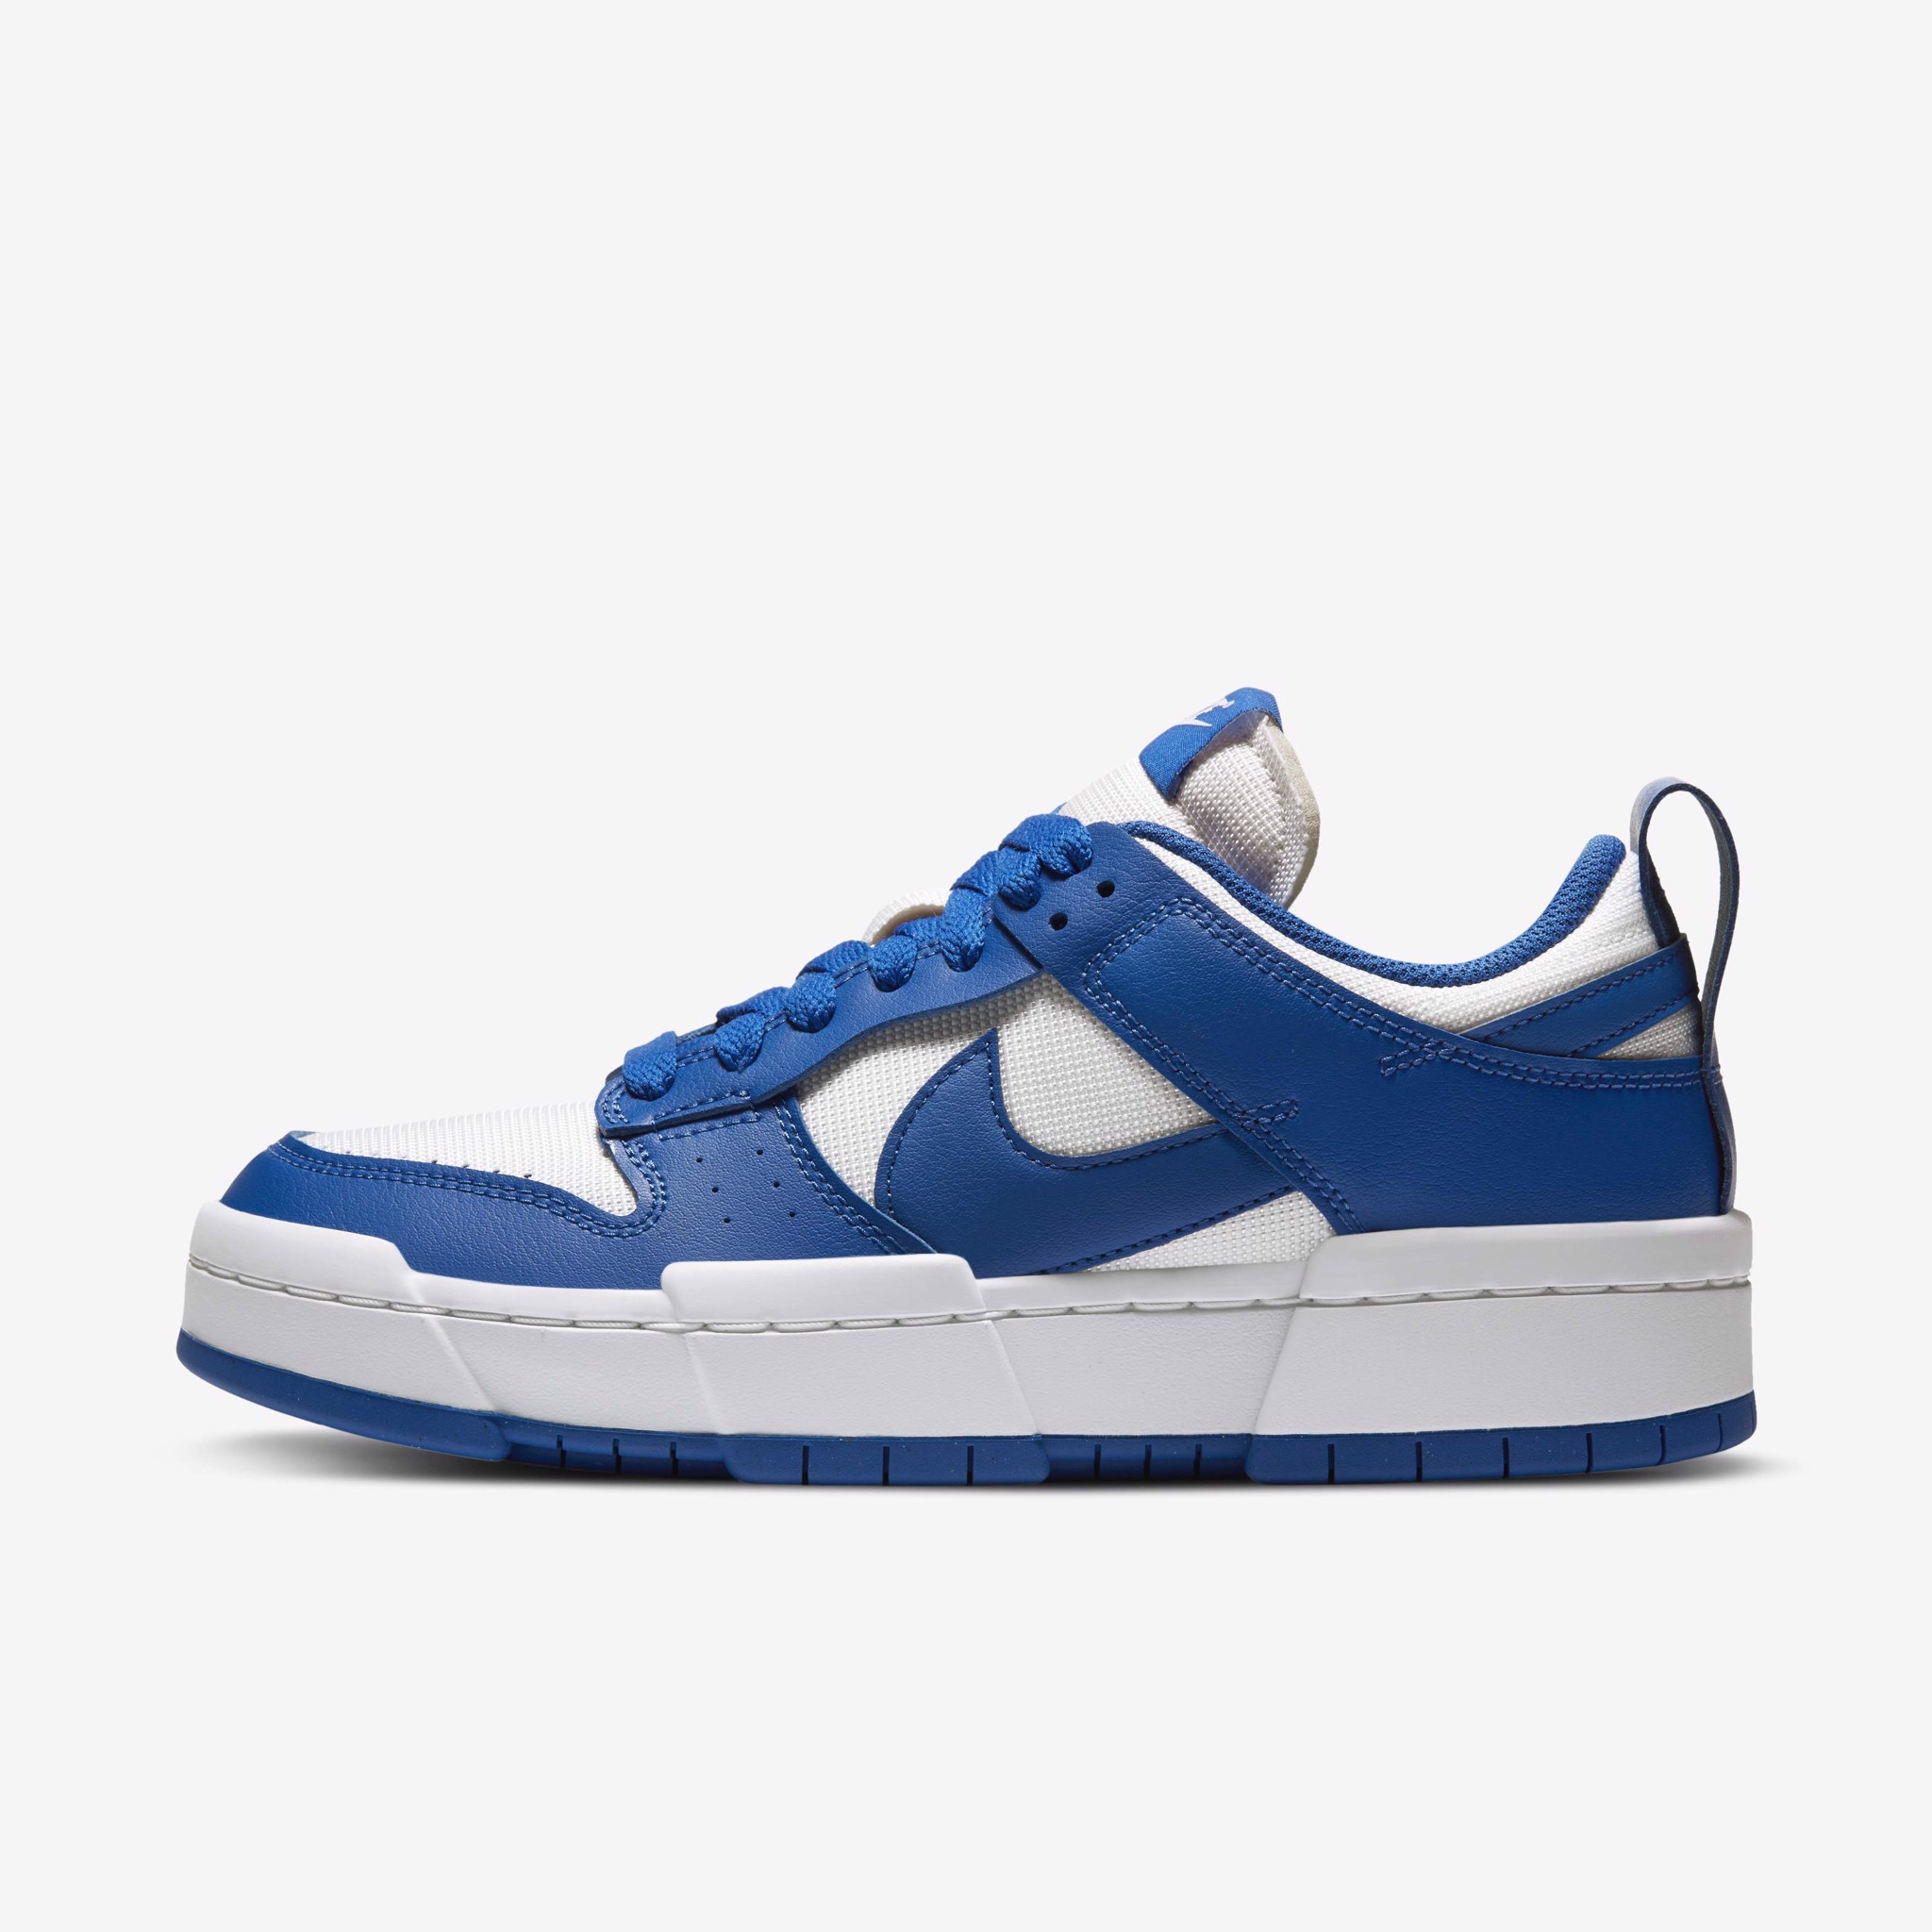 Nike Dunk Low Disrupt - Game Royal